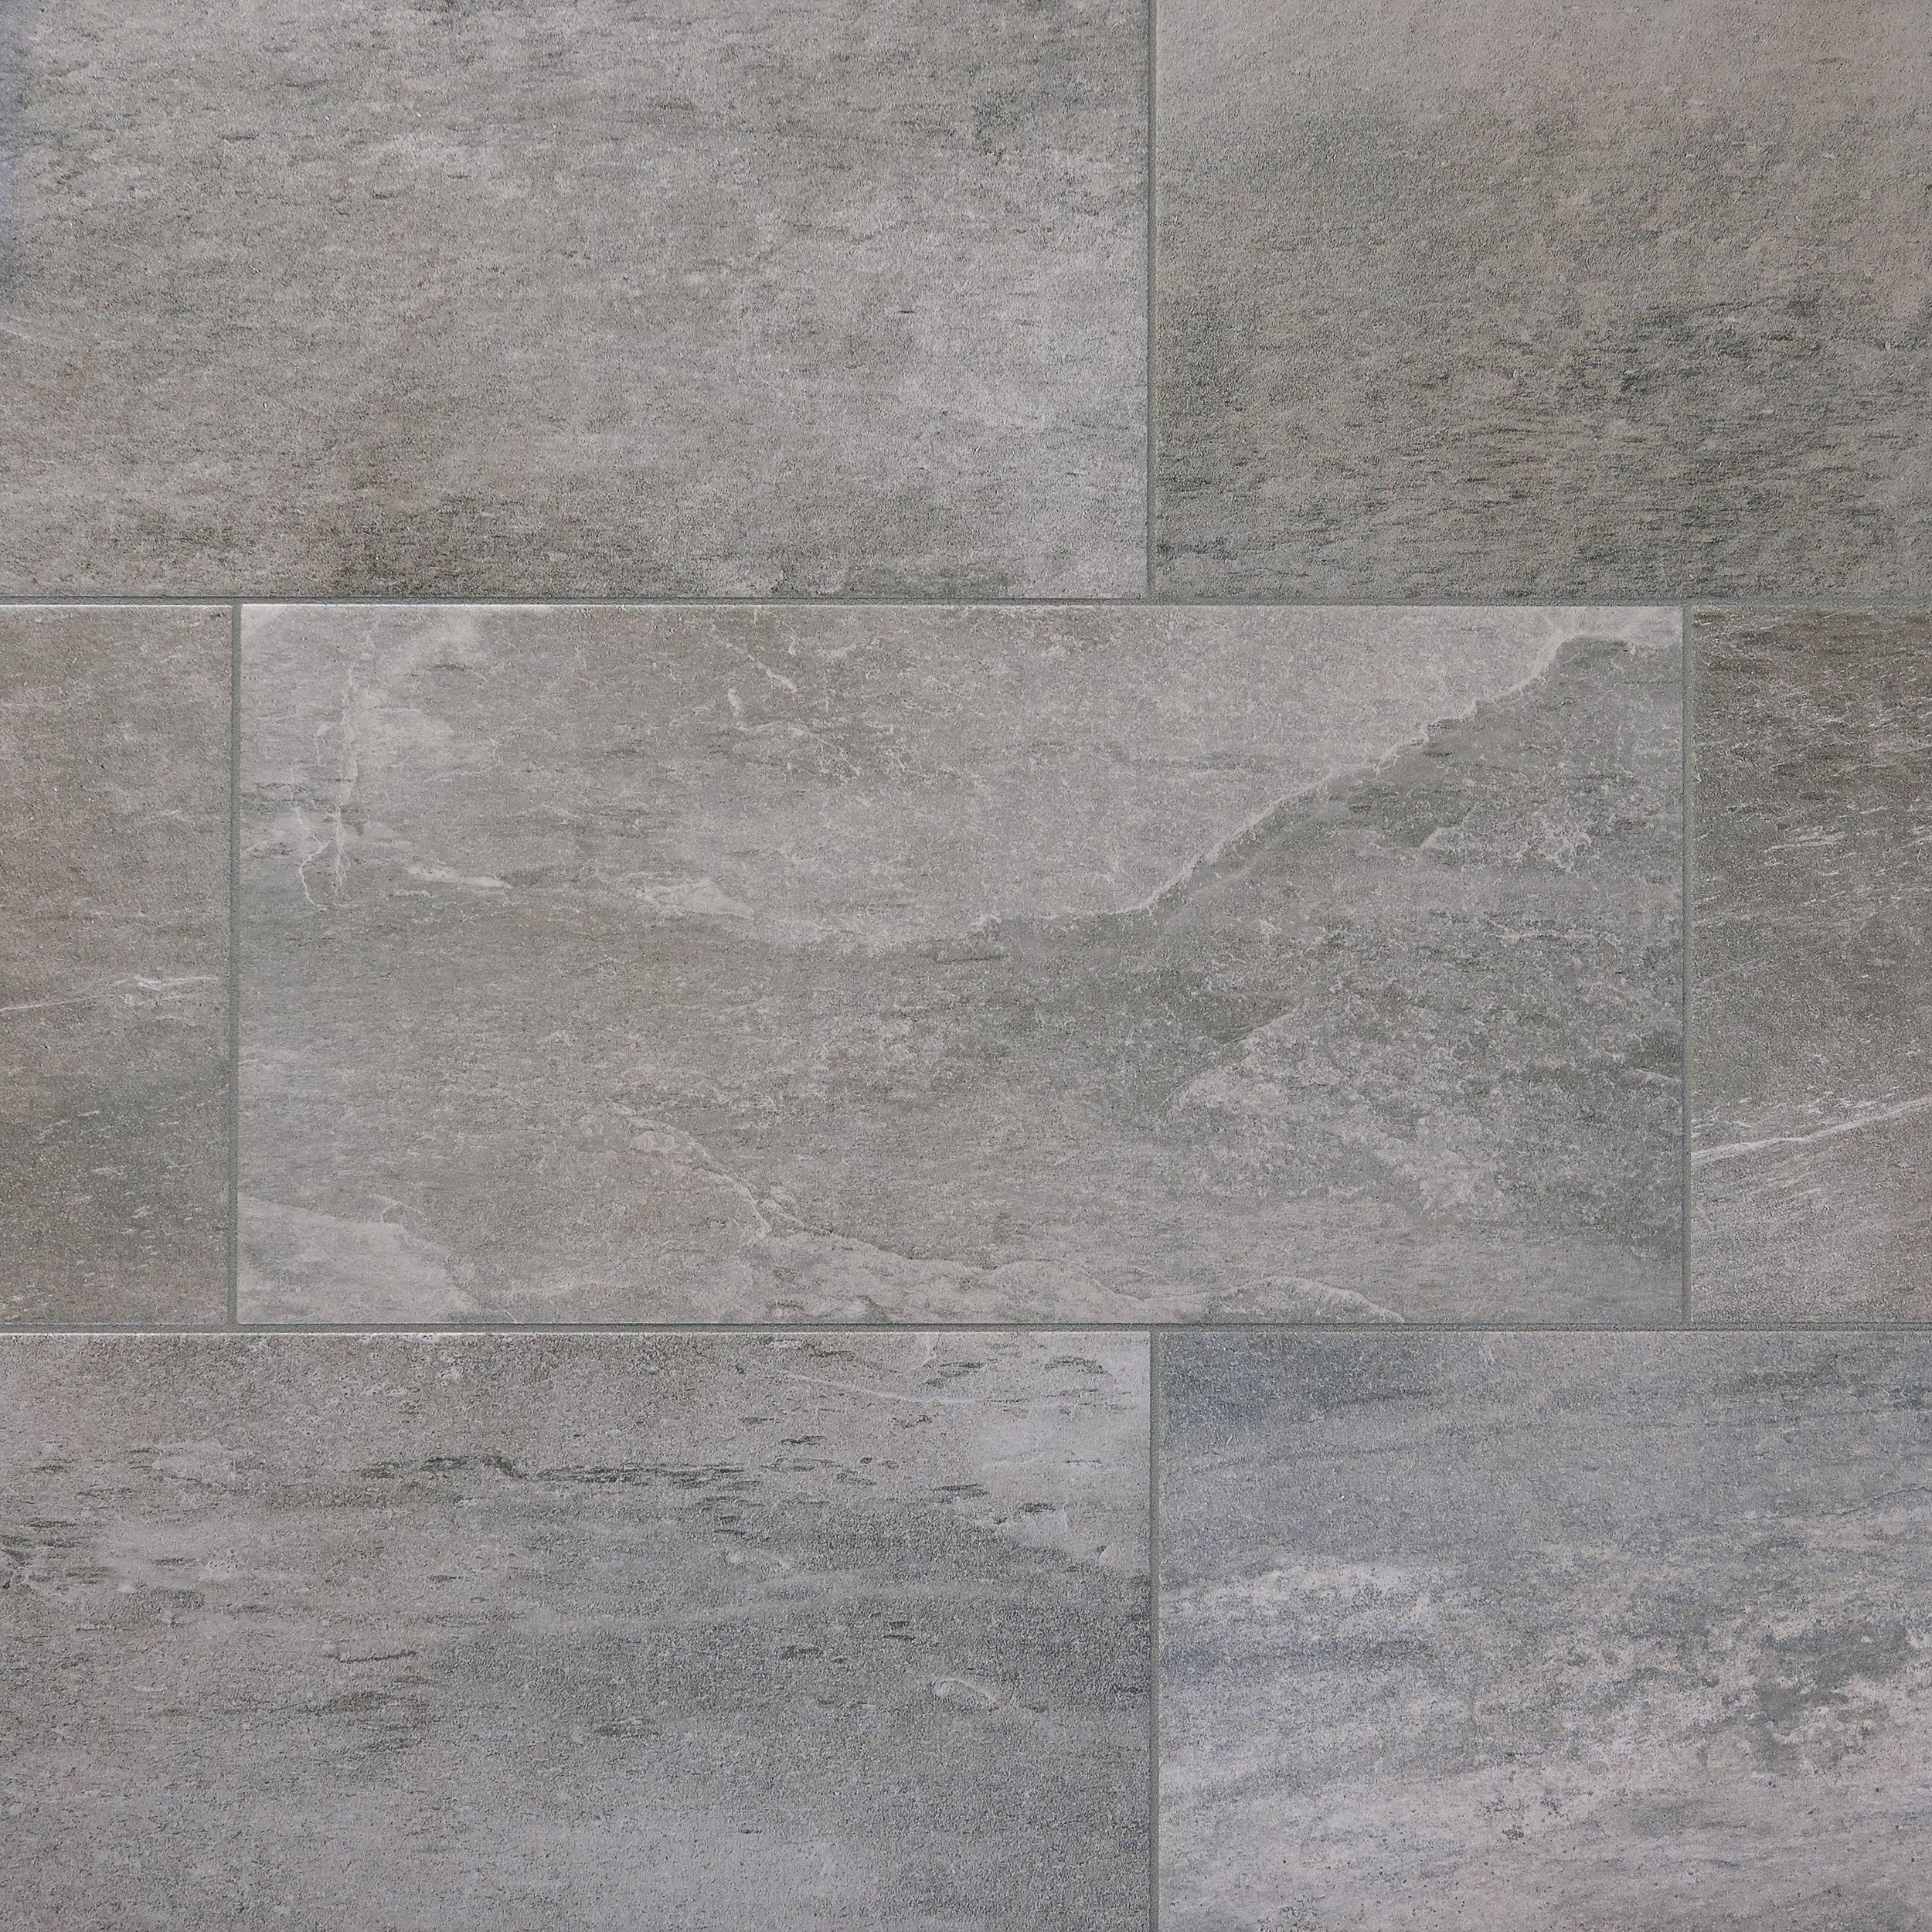 Rockwood Stone Porcelain Tile   12in. X 24in.   100221035 | Floor And Decor